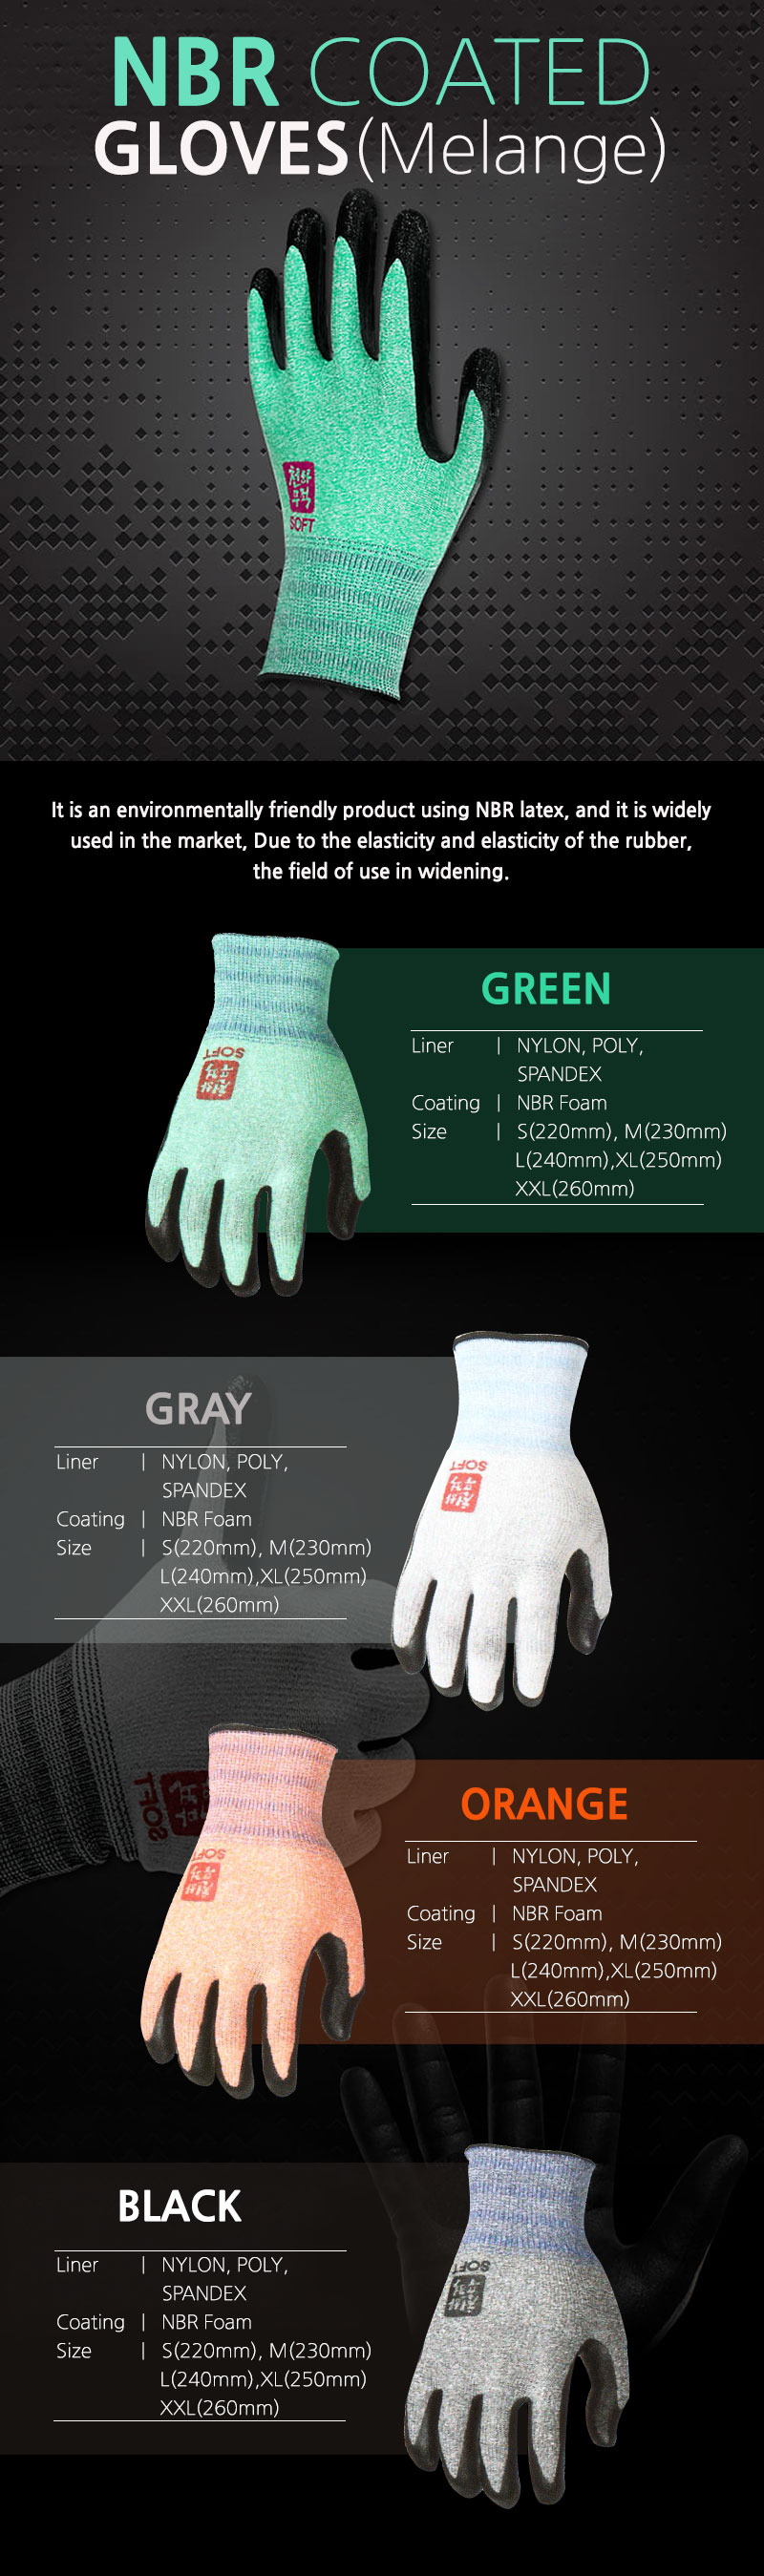 Gloves for workplace